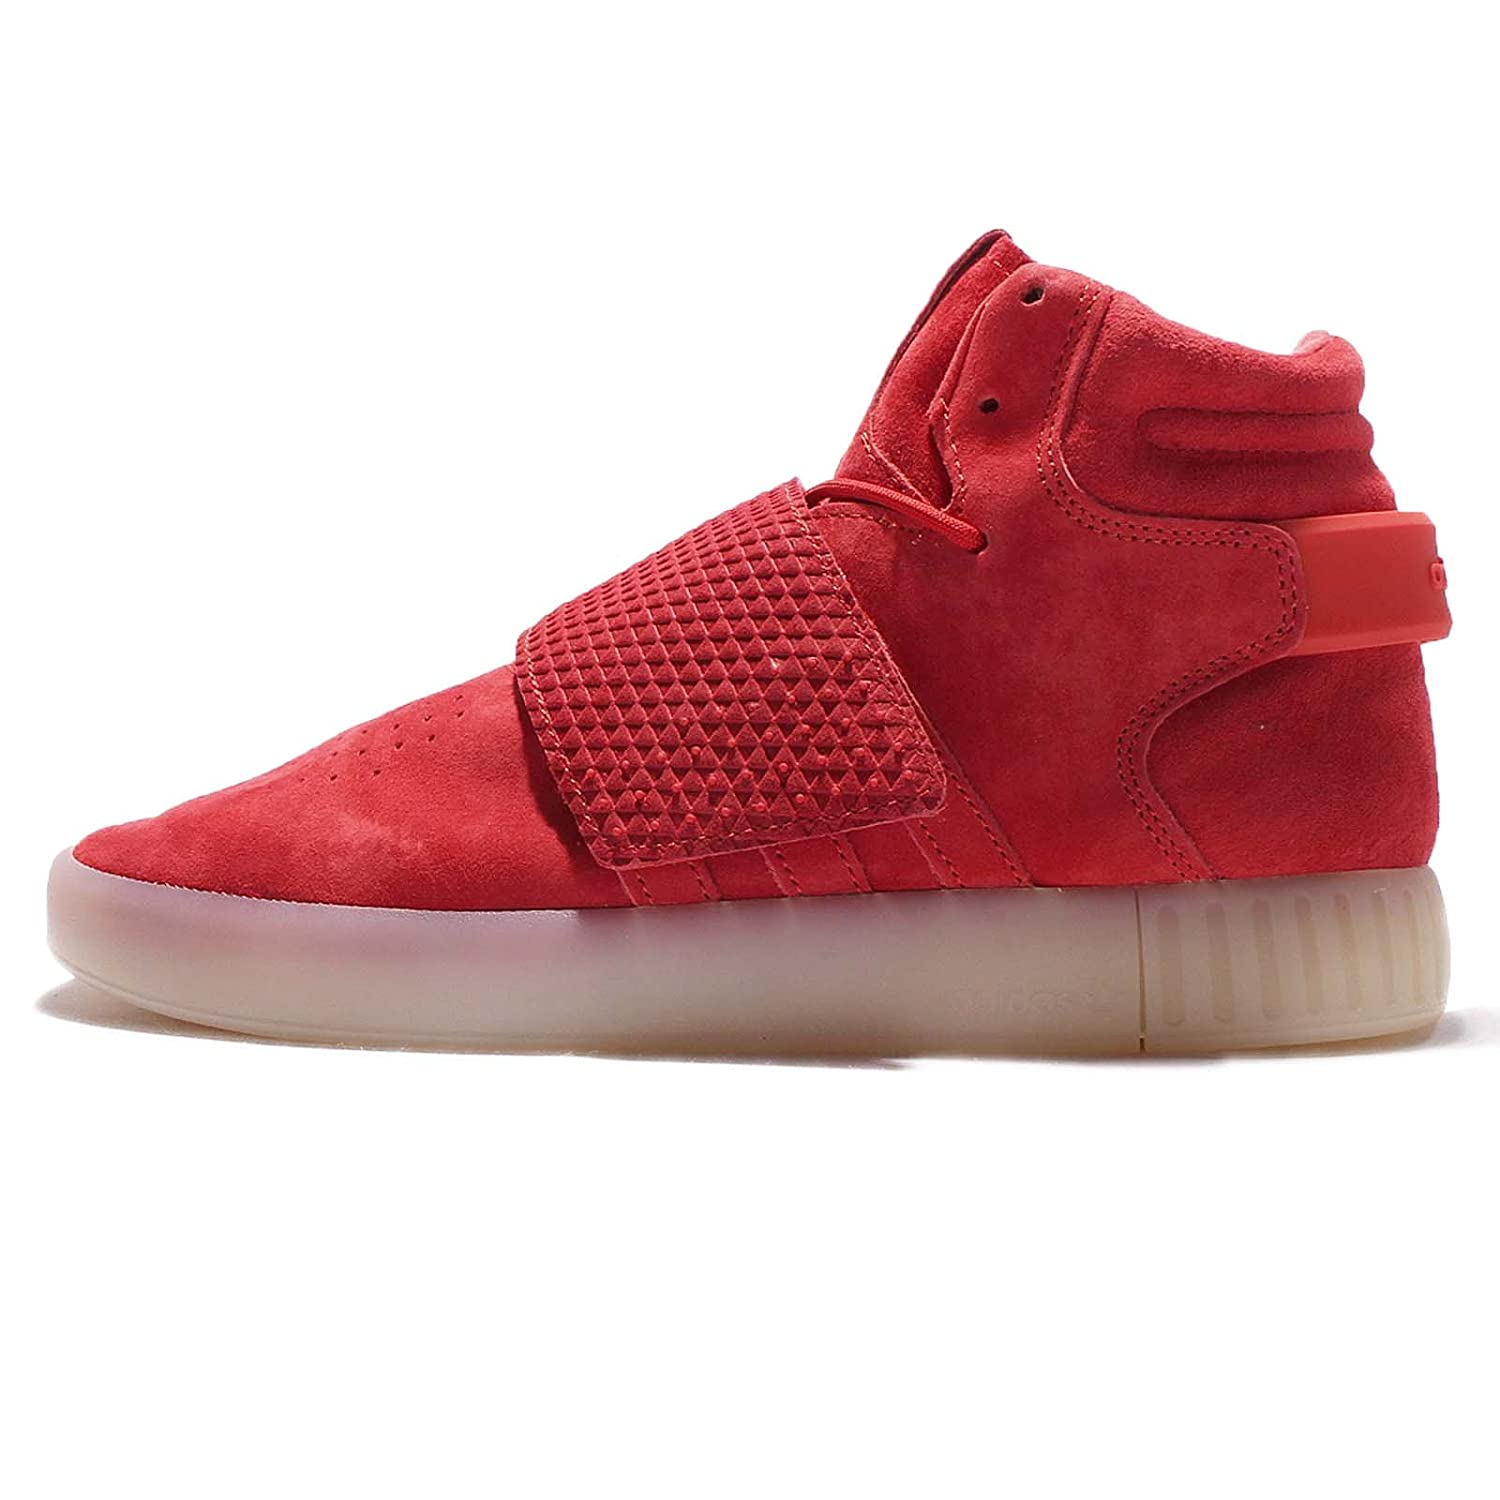 wholesale dealer 5309d 1853d Amazon.com | adidas Men's Tubular Invader Strap, RED/RED ...